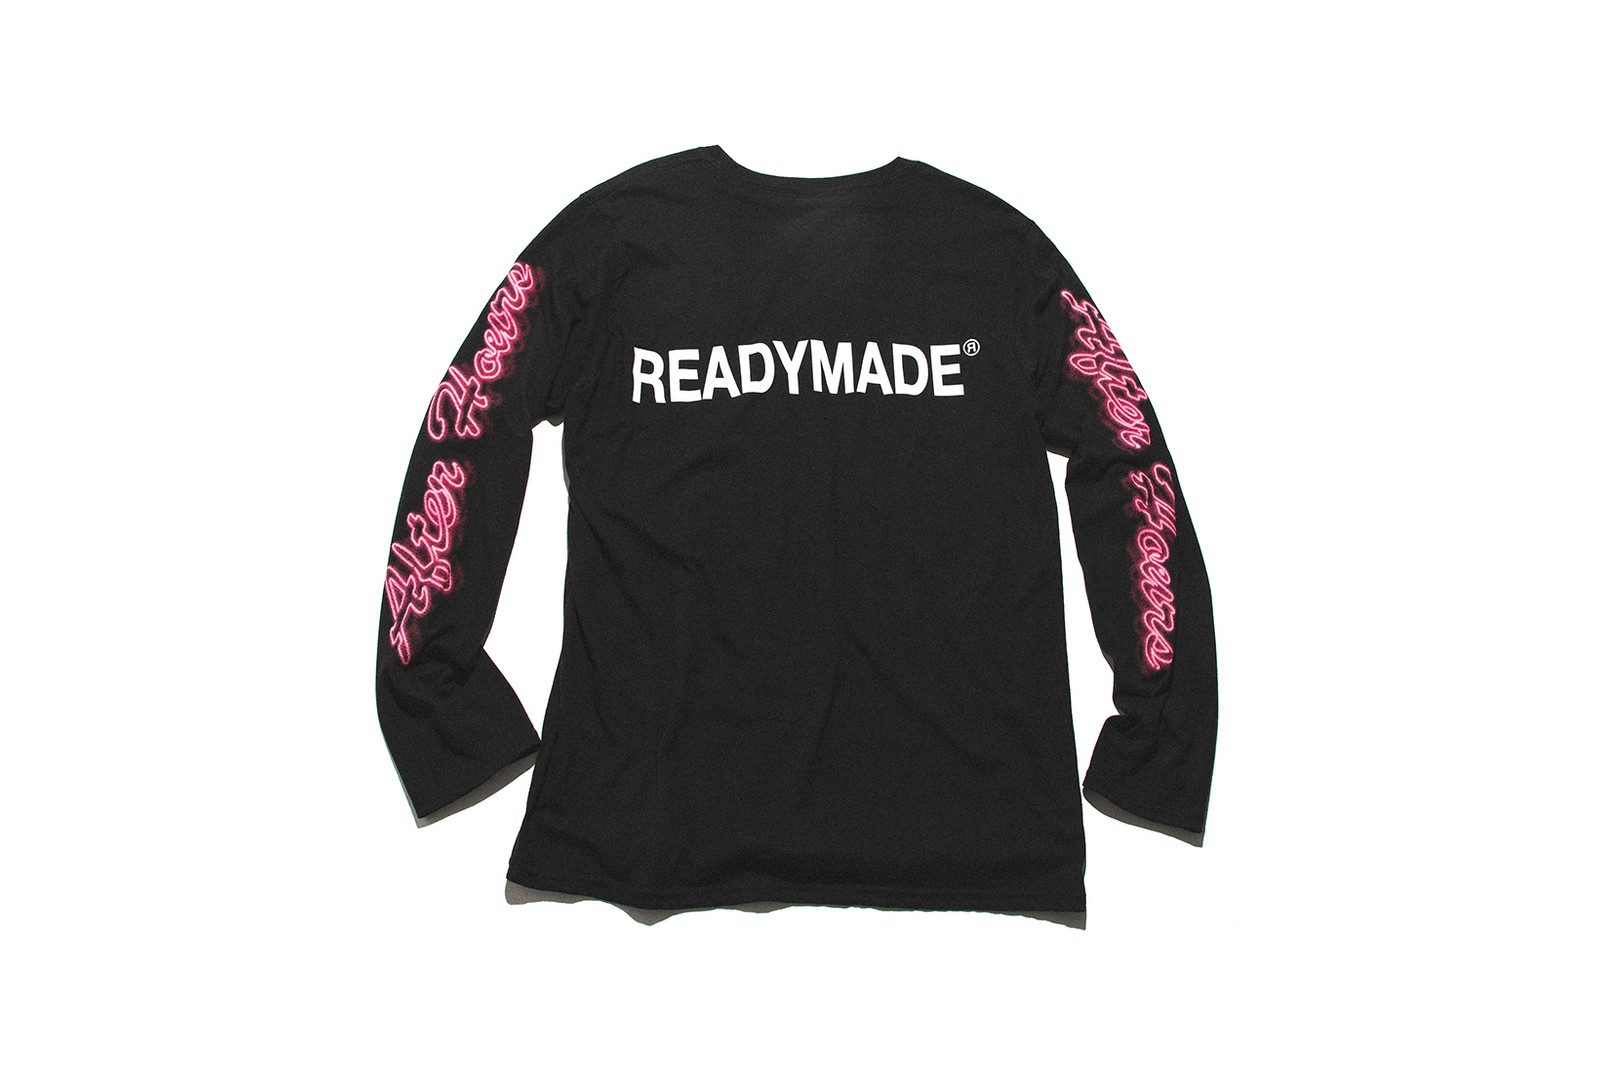 the weeknd readymade collaboration after hours tie dye tees hbx